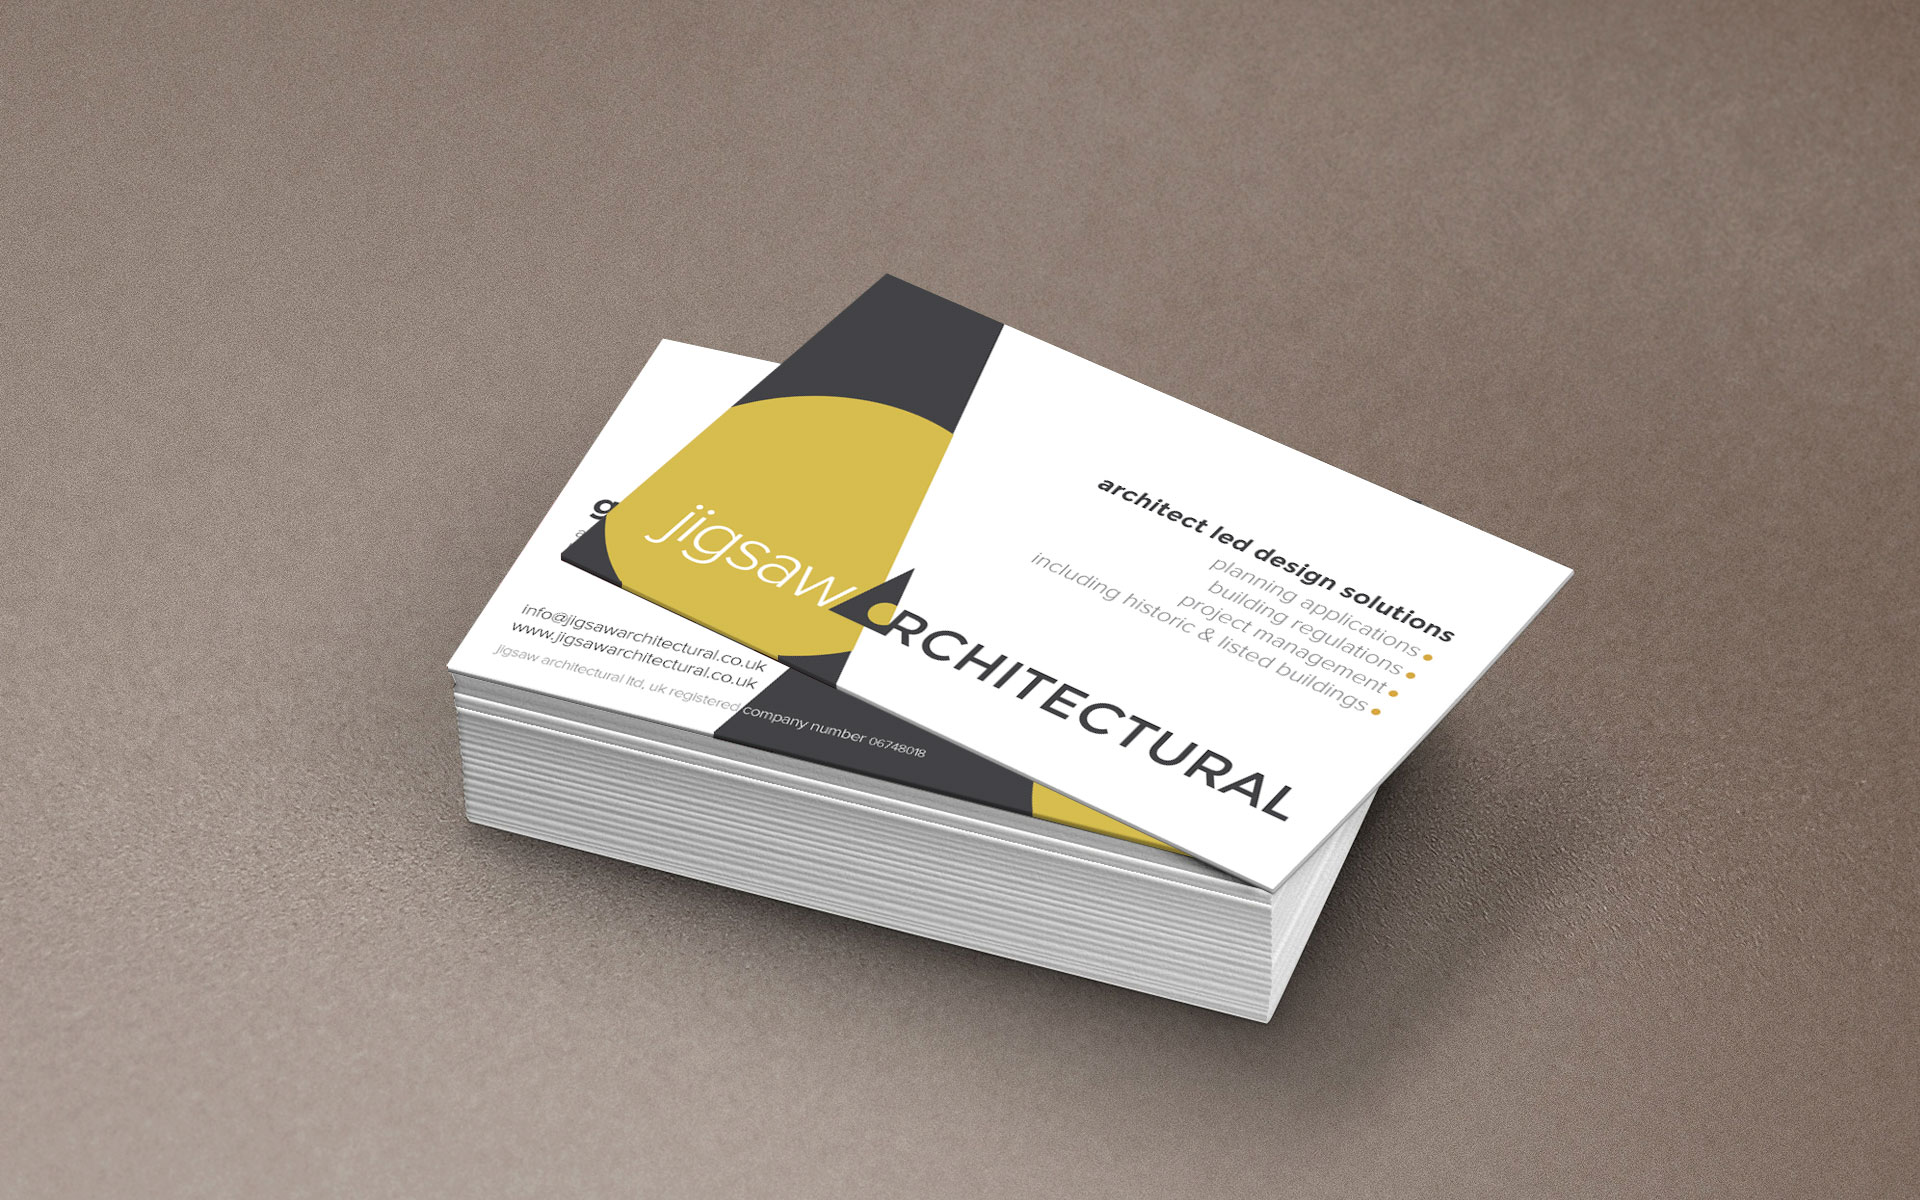 3moments Studio | Jigsaw Architectural Business Cards   3moments Studio